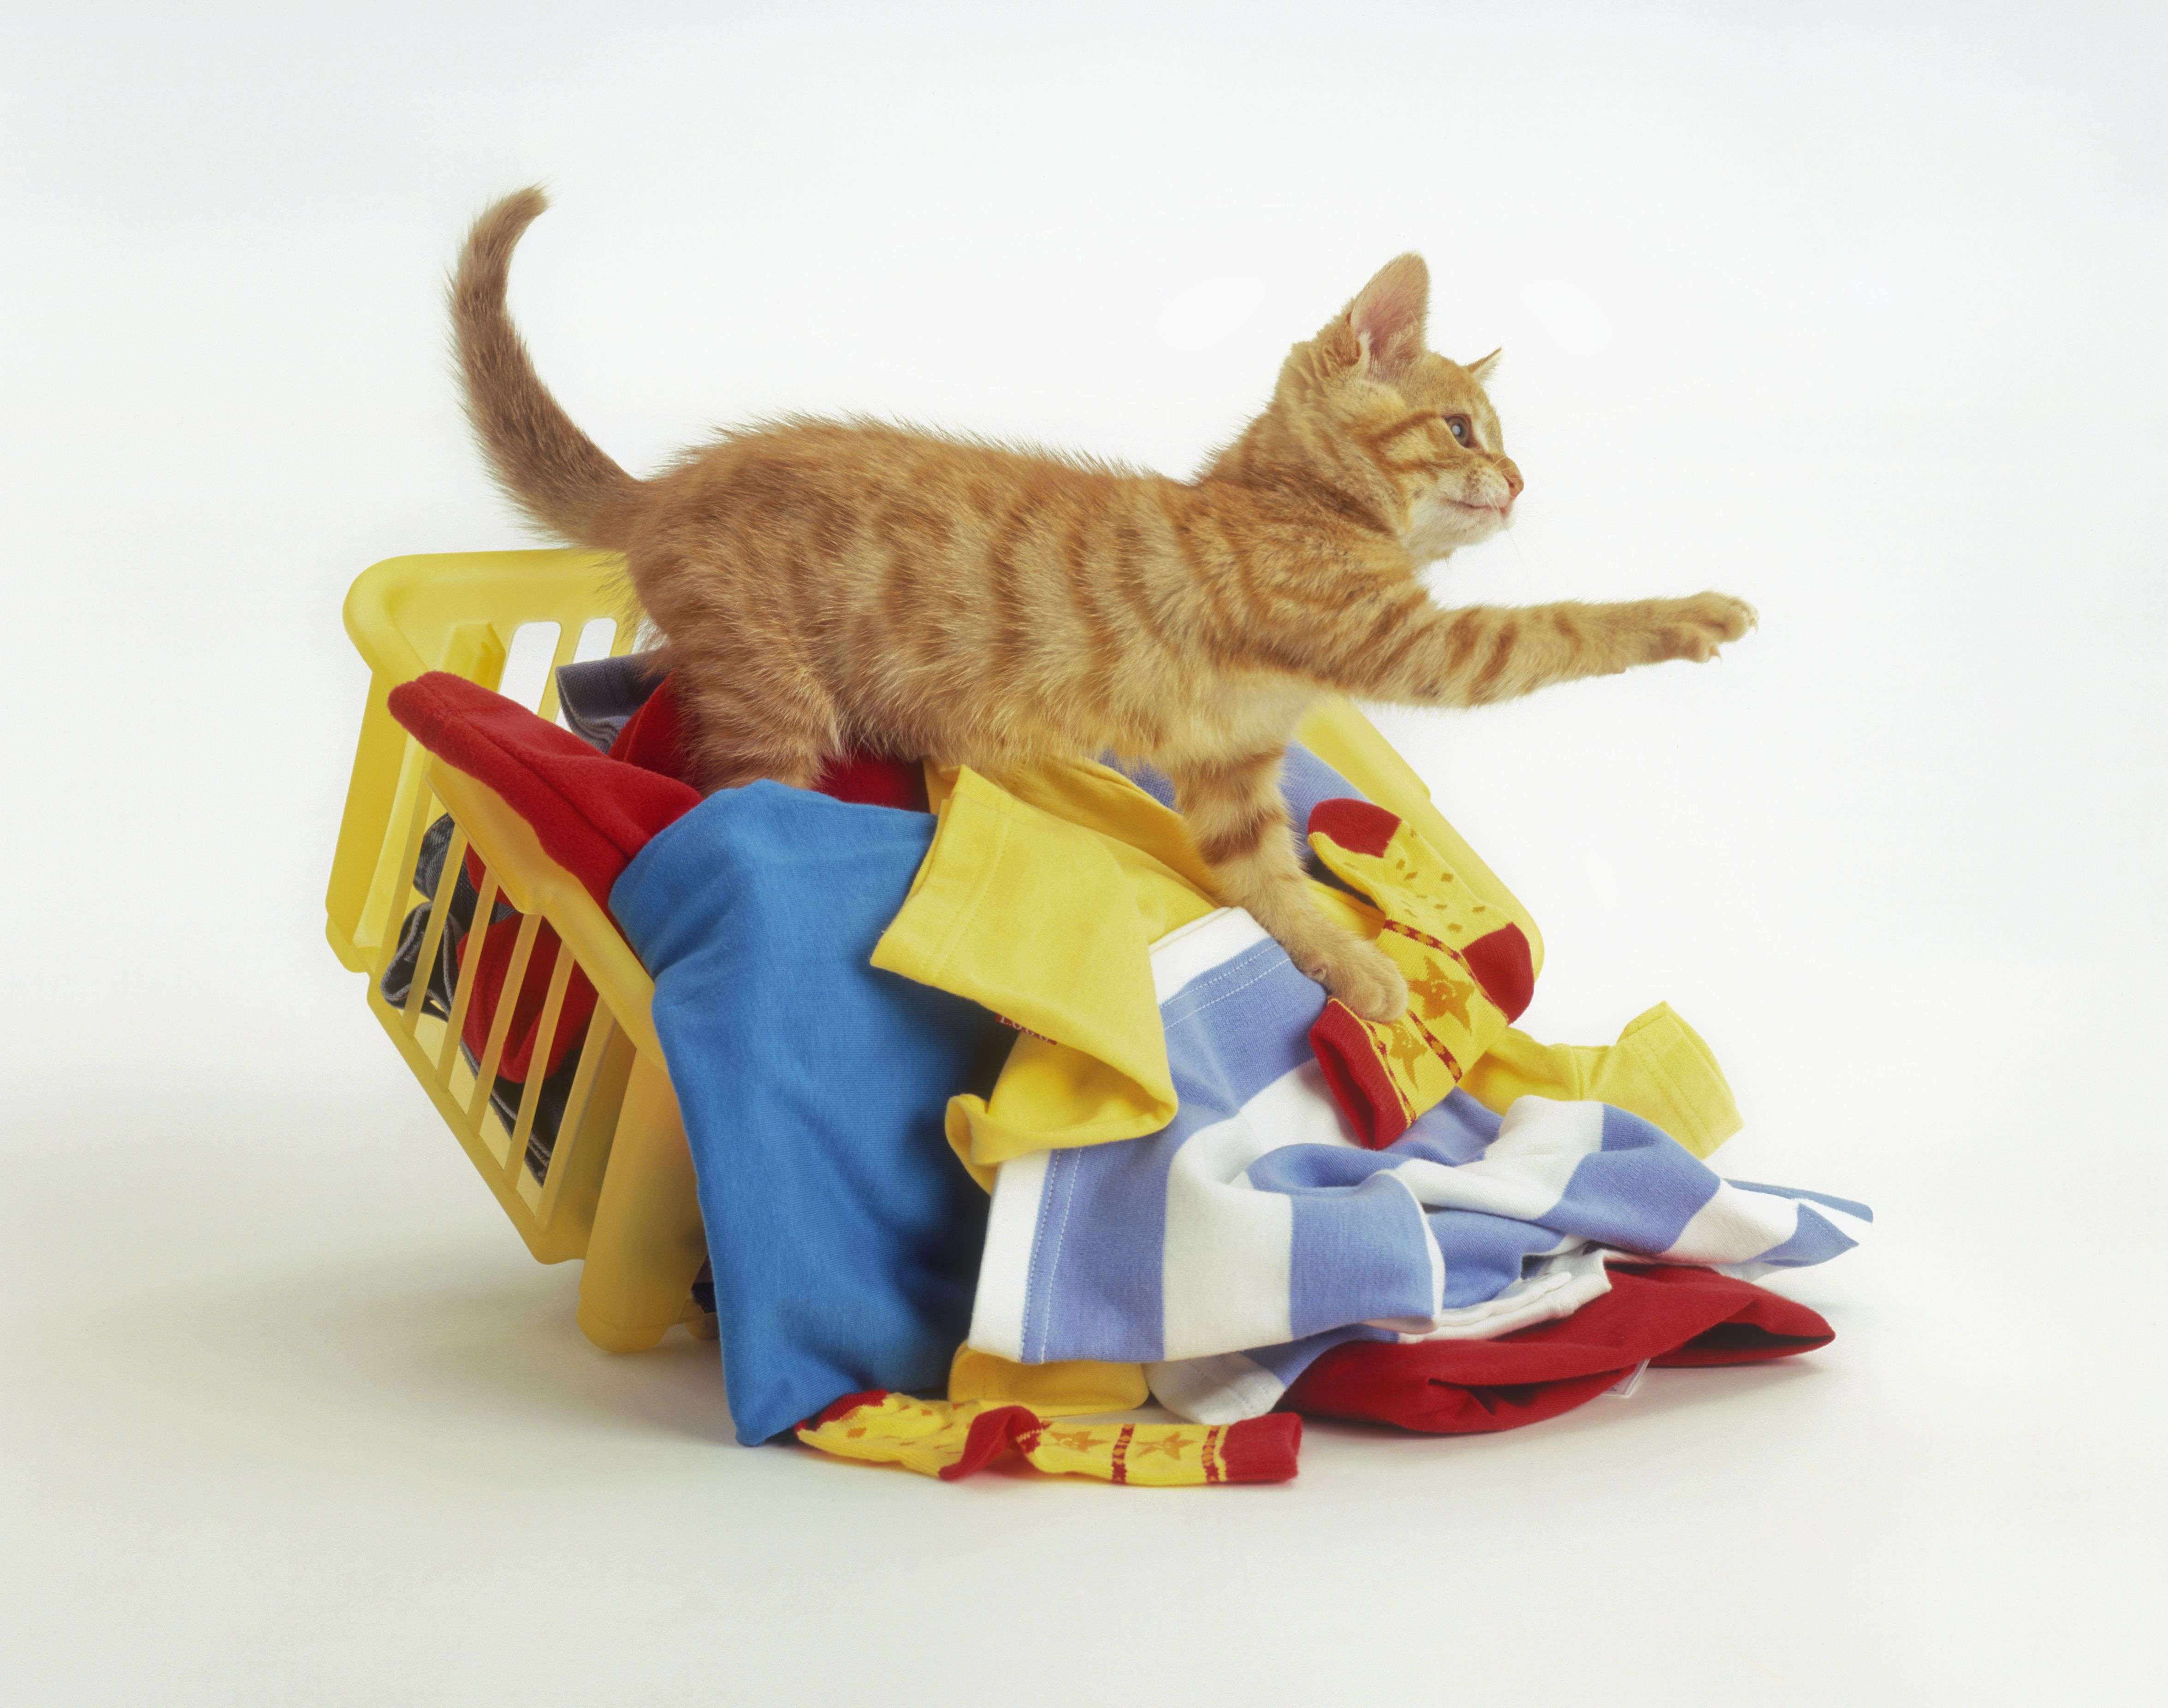 A ginger kitten climbing over a basket of washing and knocking it over